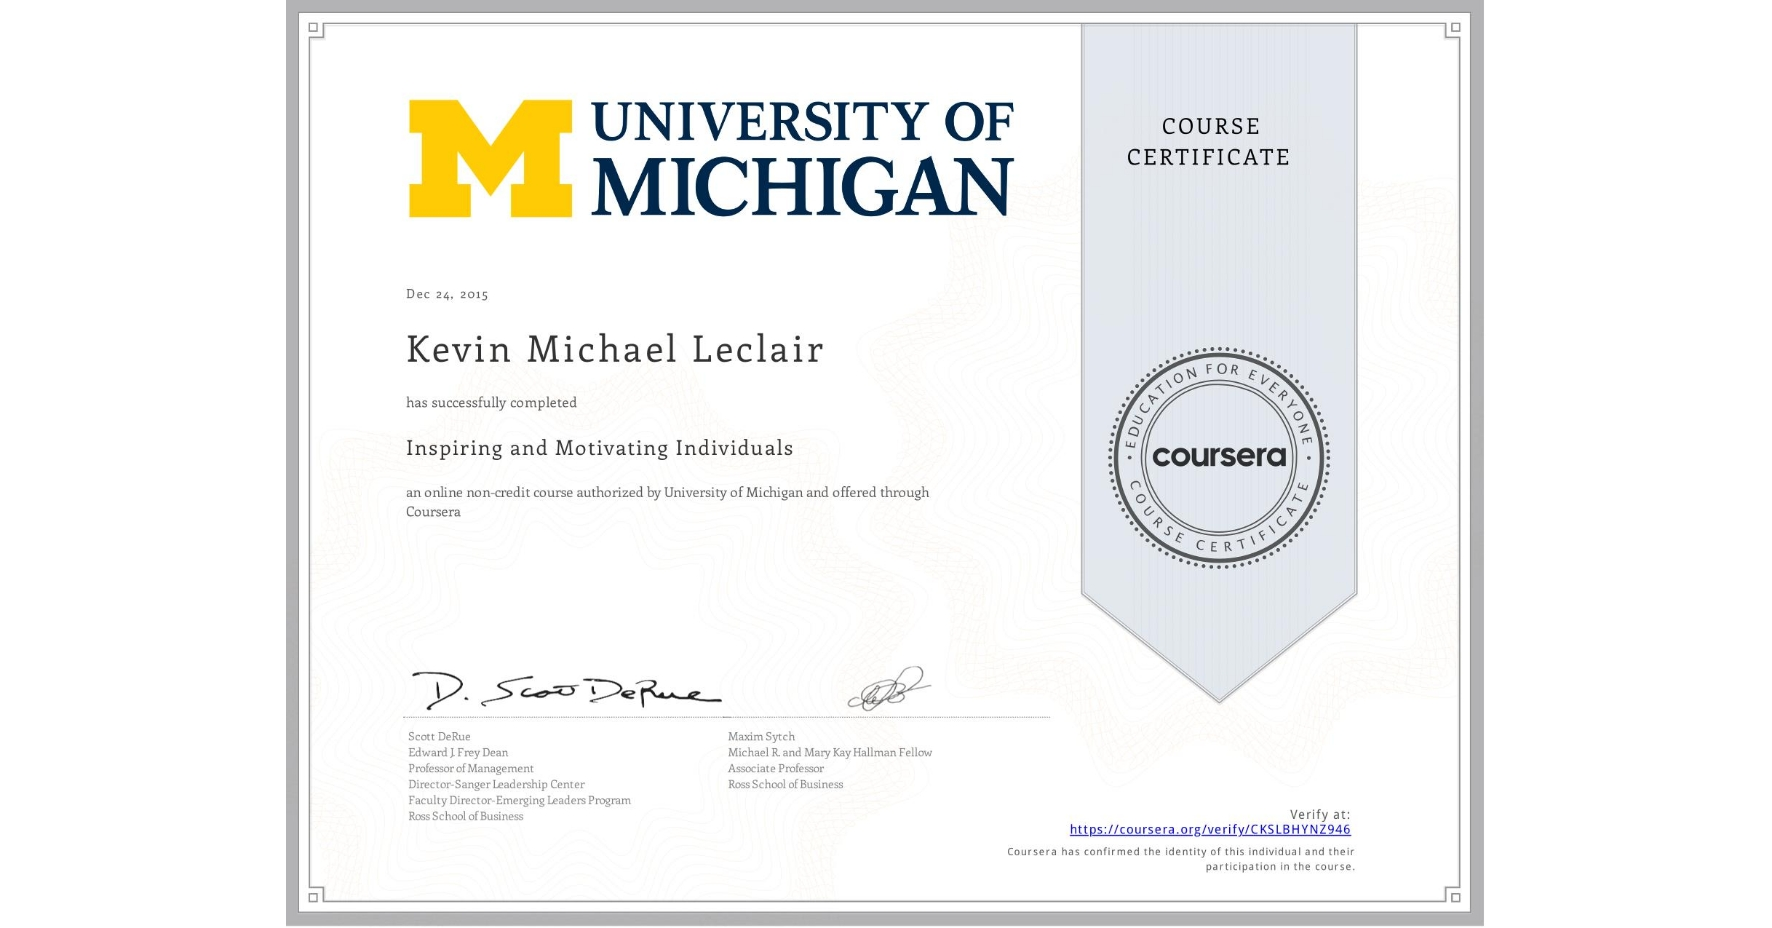 View certificate for Kevin Michael Leclair, Inspiring and Motivating Individuals, an online non-credit course authorized by University of Michigan and offered through Coursera